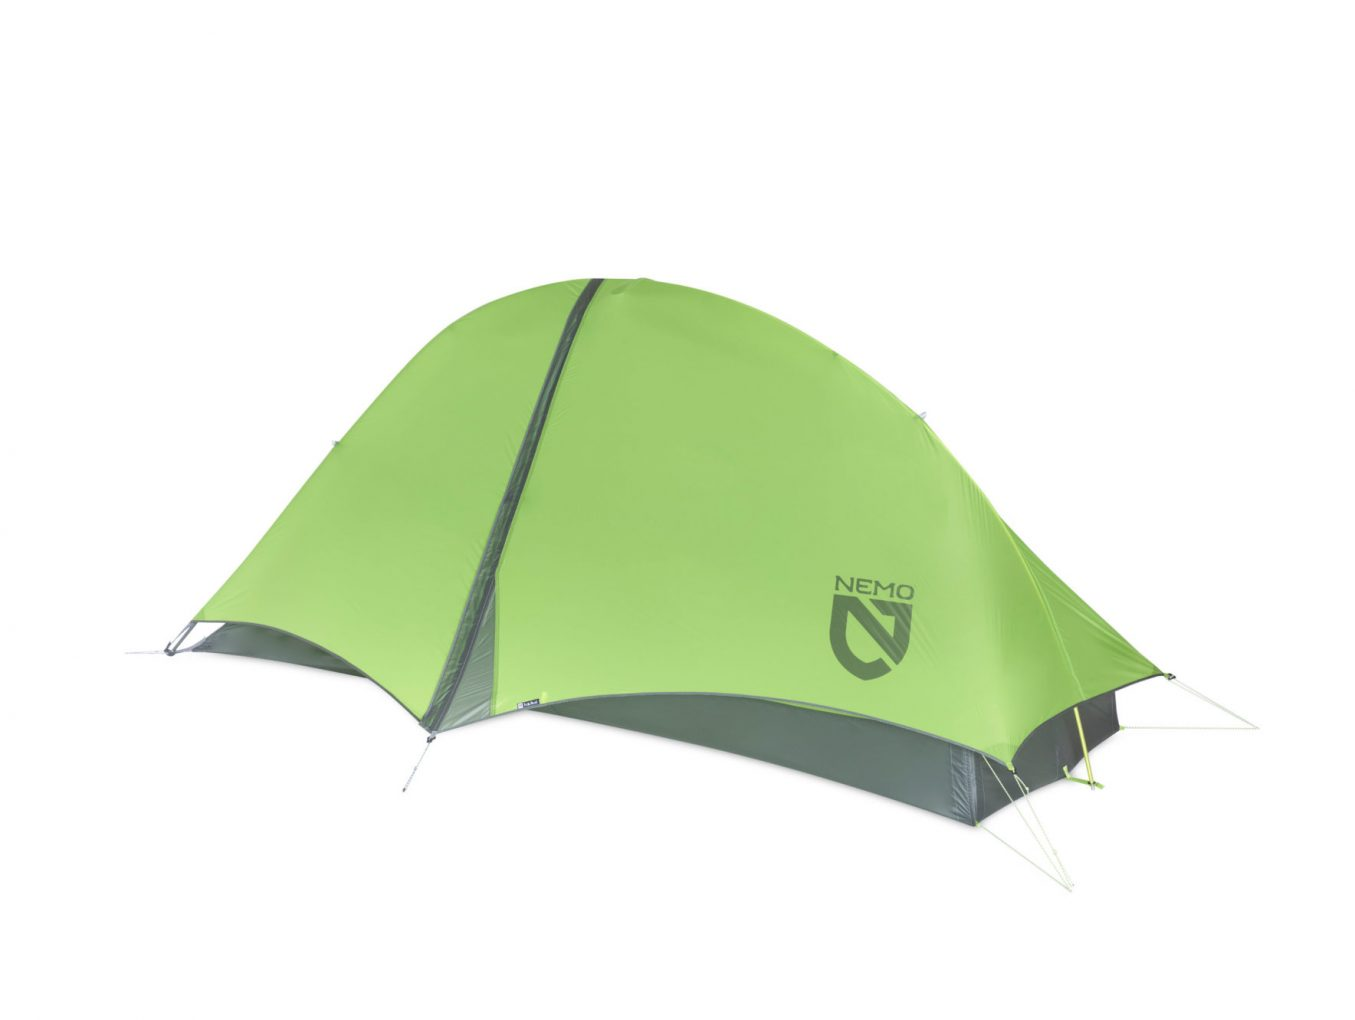 Nemo Hornet 2 Person Ultralight Tent